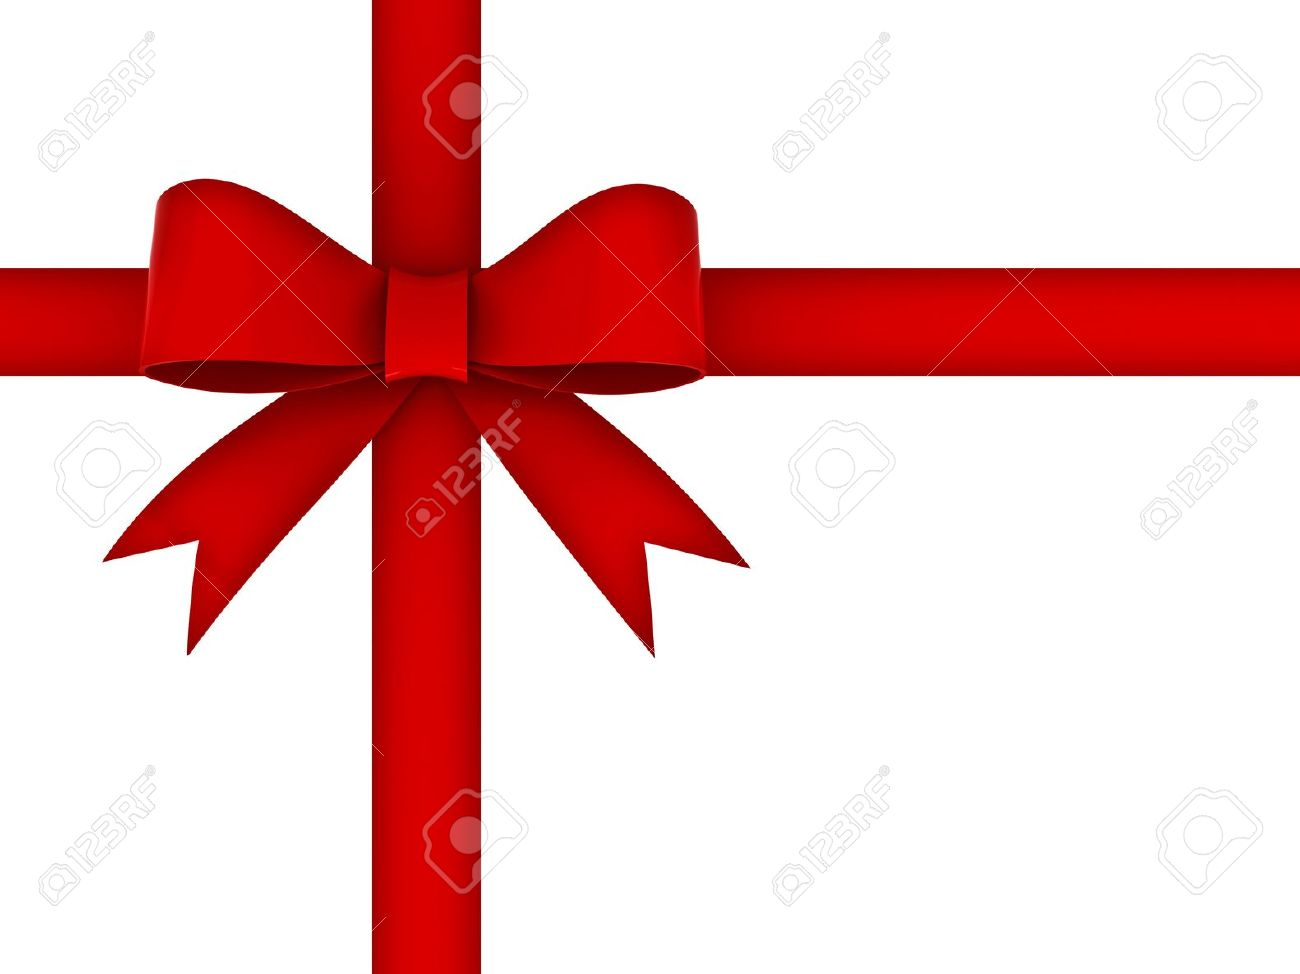 12432455-red-gift-ribbon-bow-isolated-on-white-background-stock-photo-gift-voucher-box